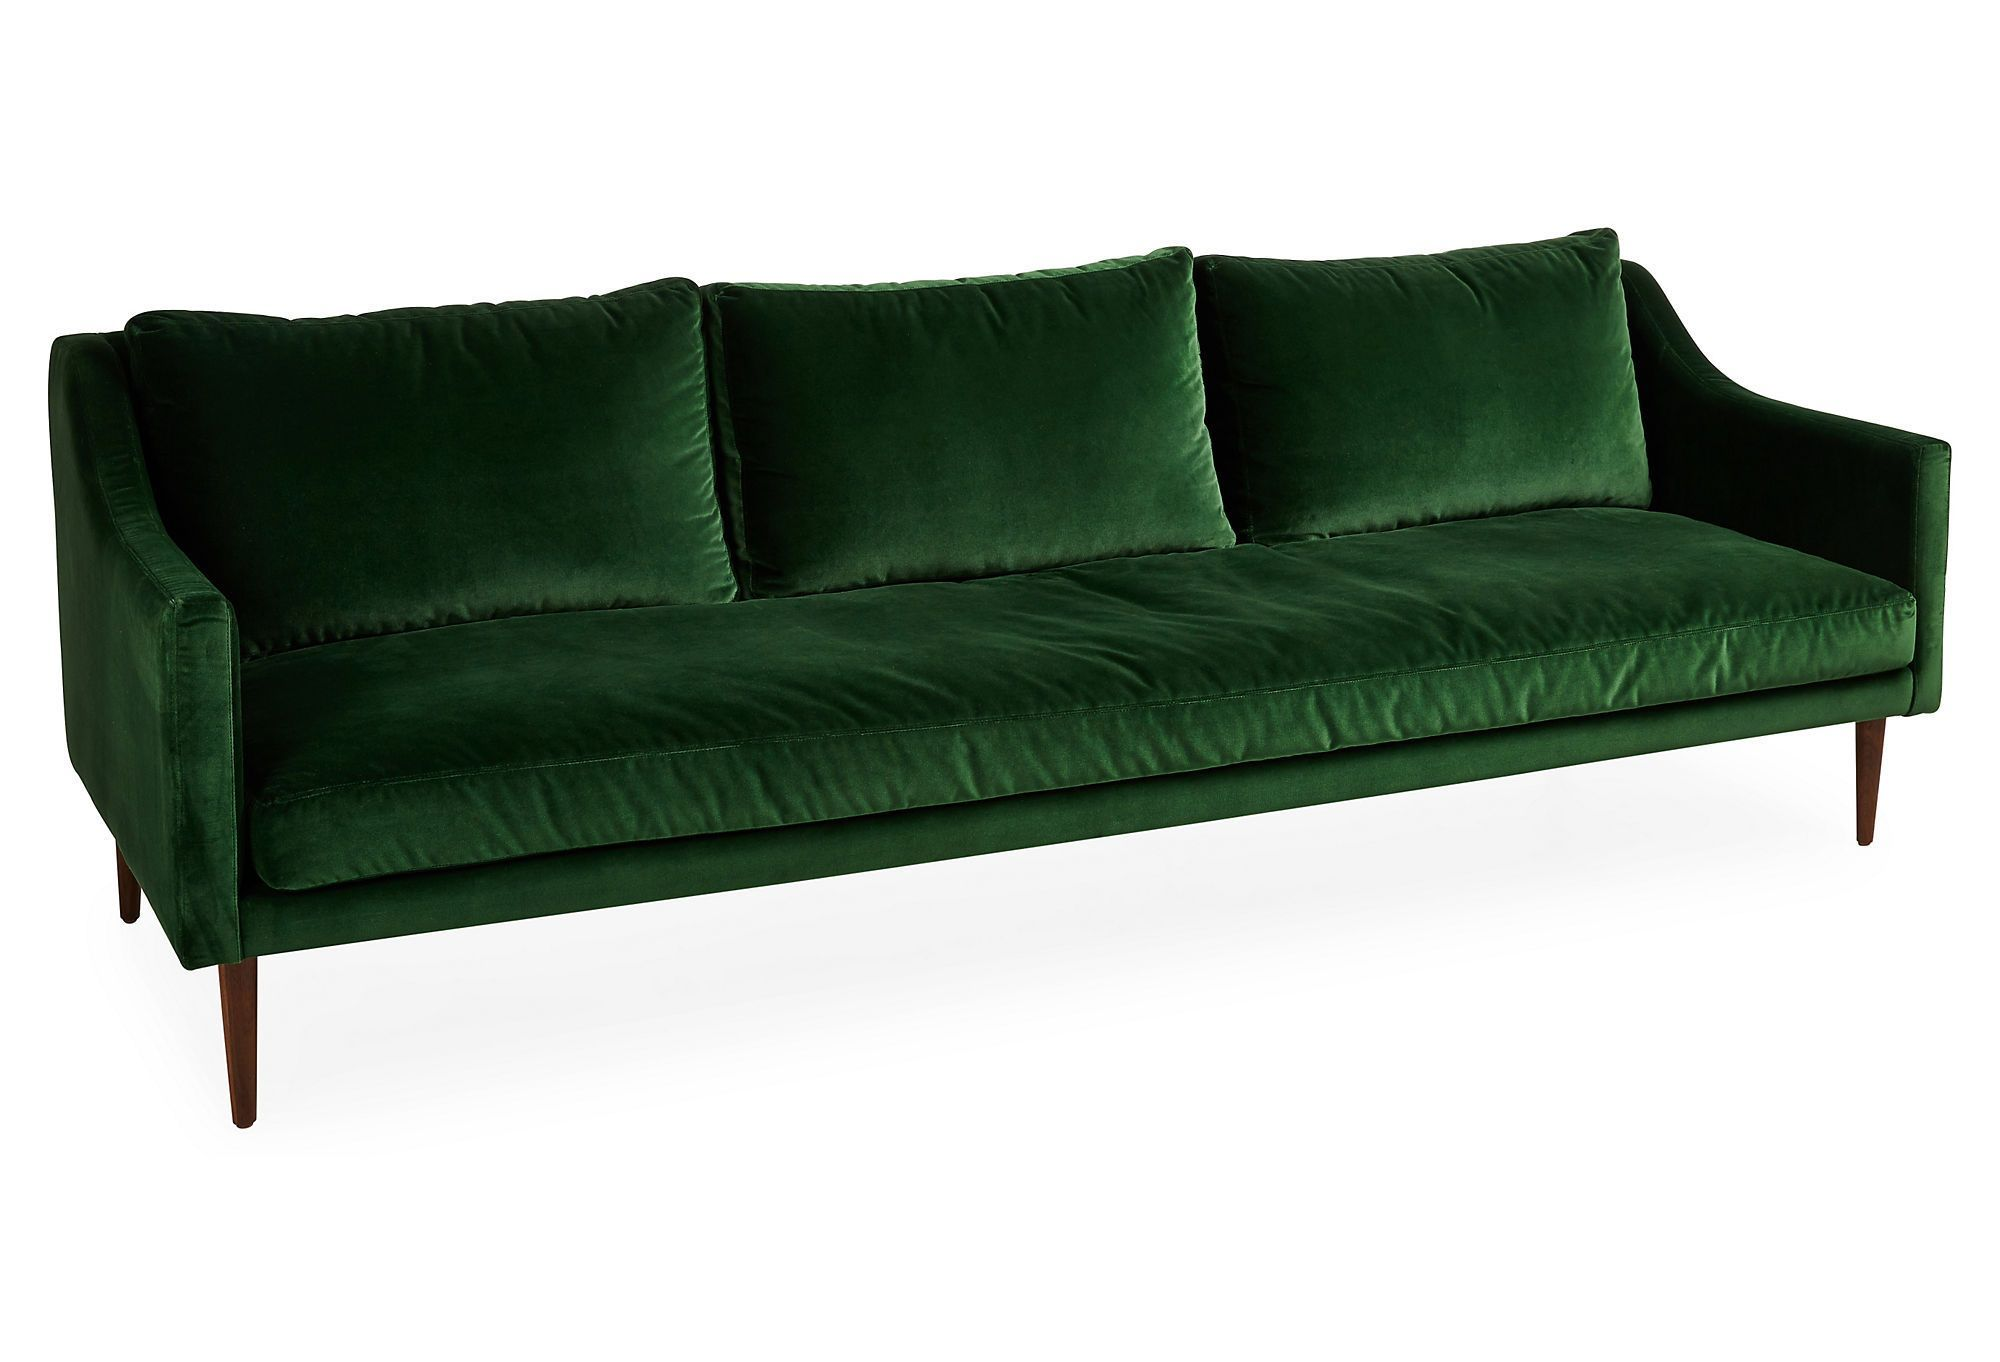 Emerald Velvet Upholstery Swoop Arms And Slender Tapered Legs Make This Naples Sofa An Undeniably Glamorous Piece The Cushion Fill Of High Density Foam